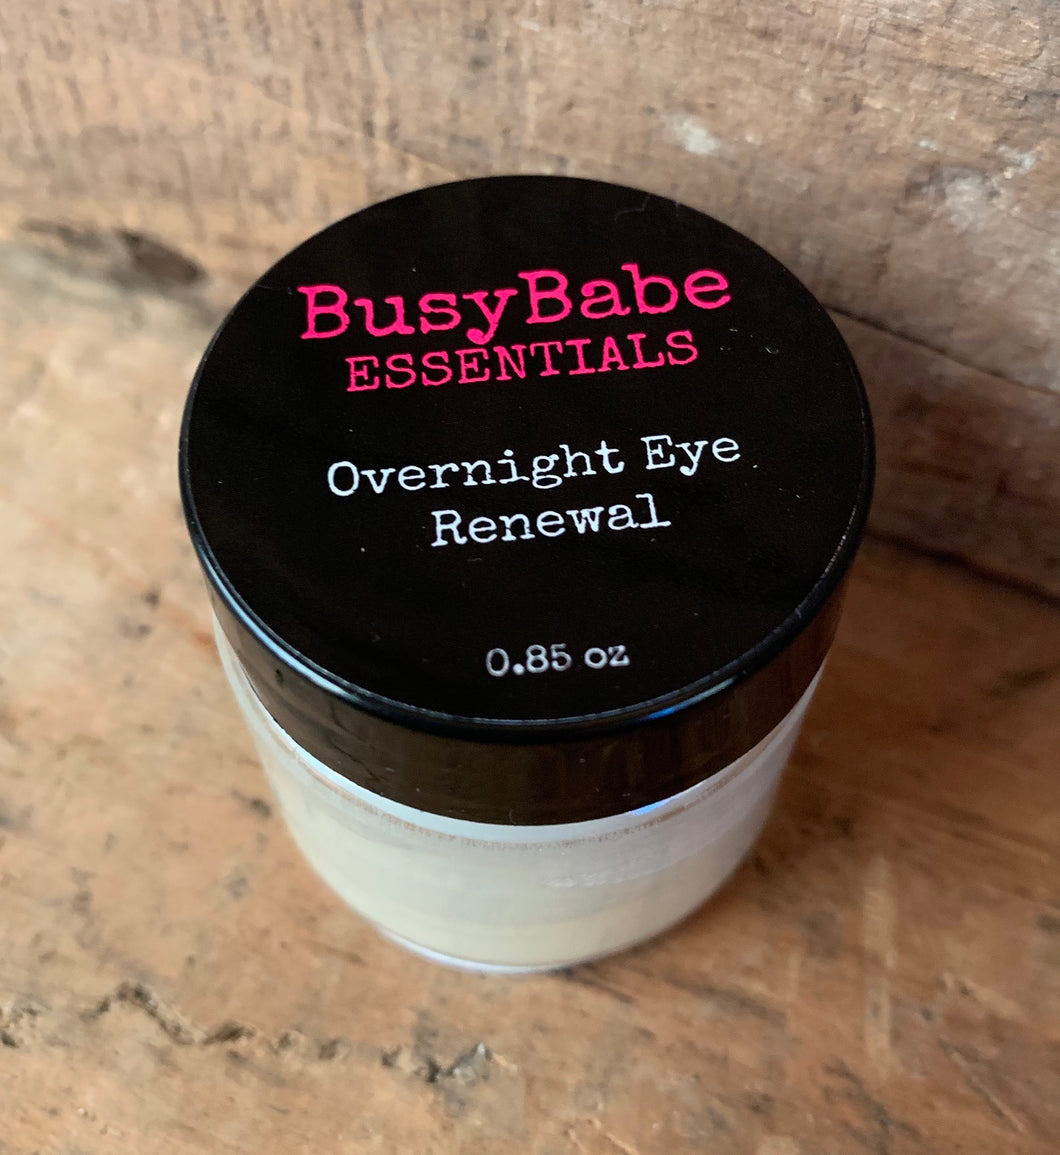 Overnight Eye Renewal